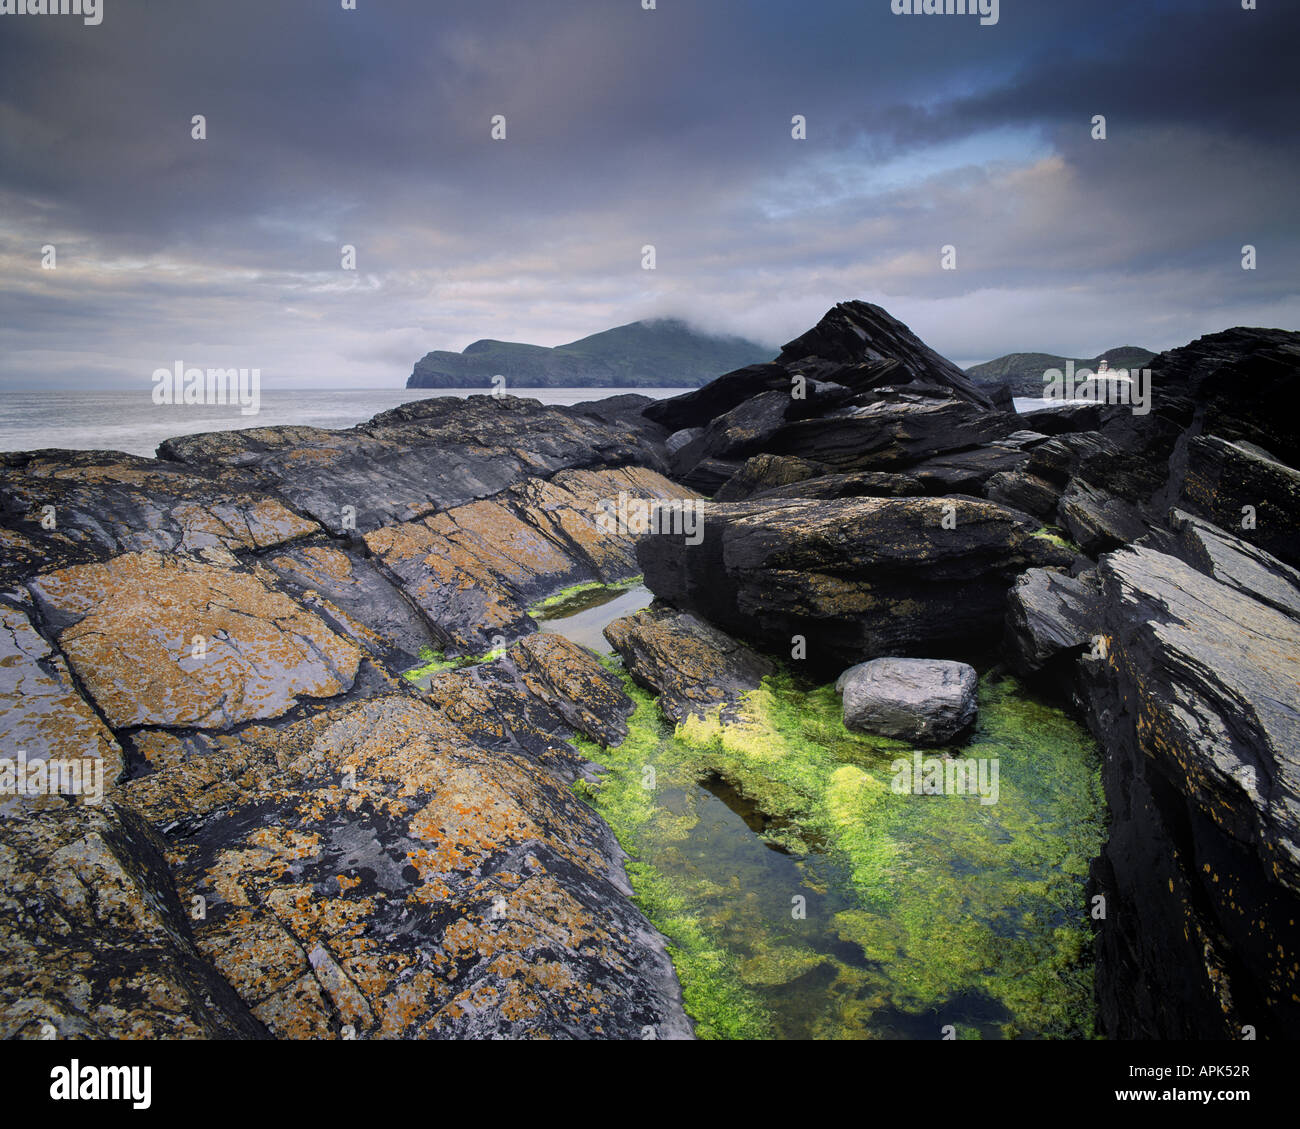 IE - CO.KERRY: Doulus Bay and Valencia Lighthouse - Stock Image